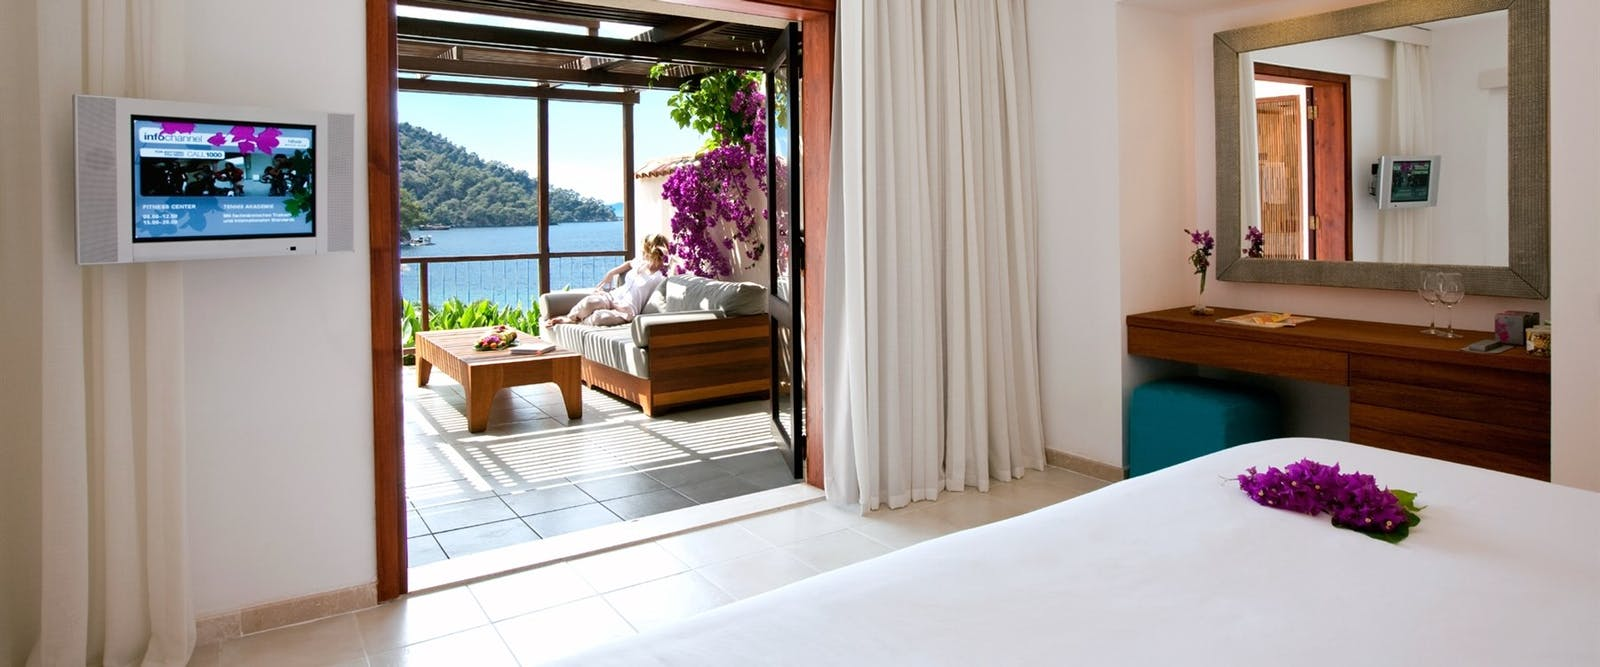 Guest Bedroom at Hillside Beach Club, Fethiye, Turkey